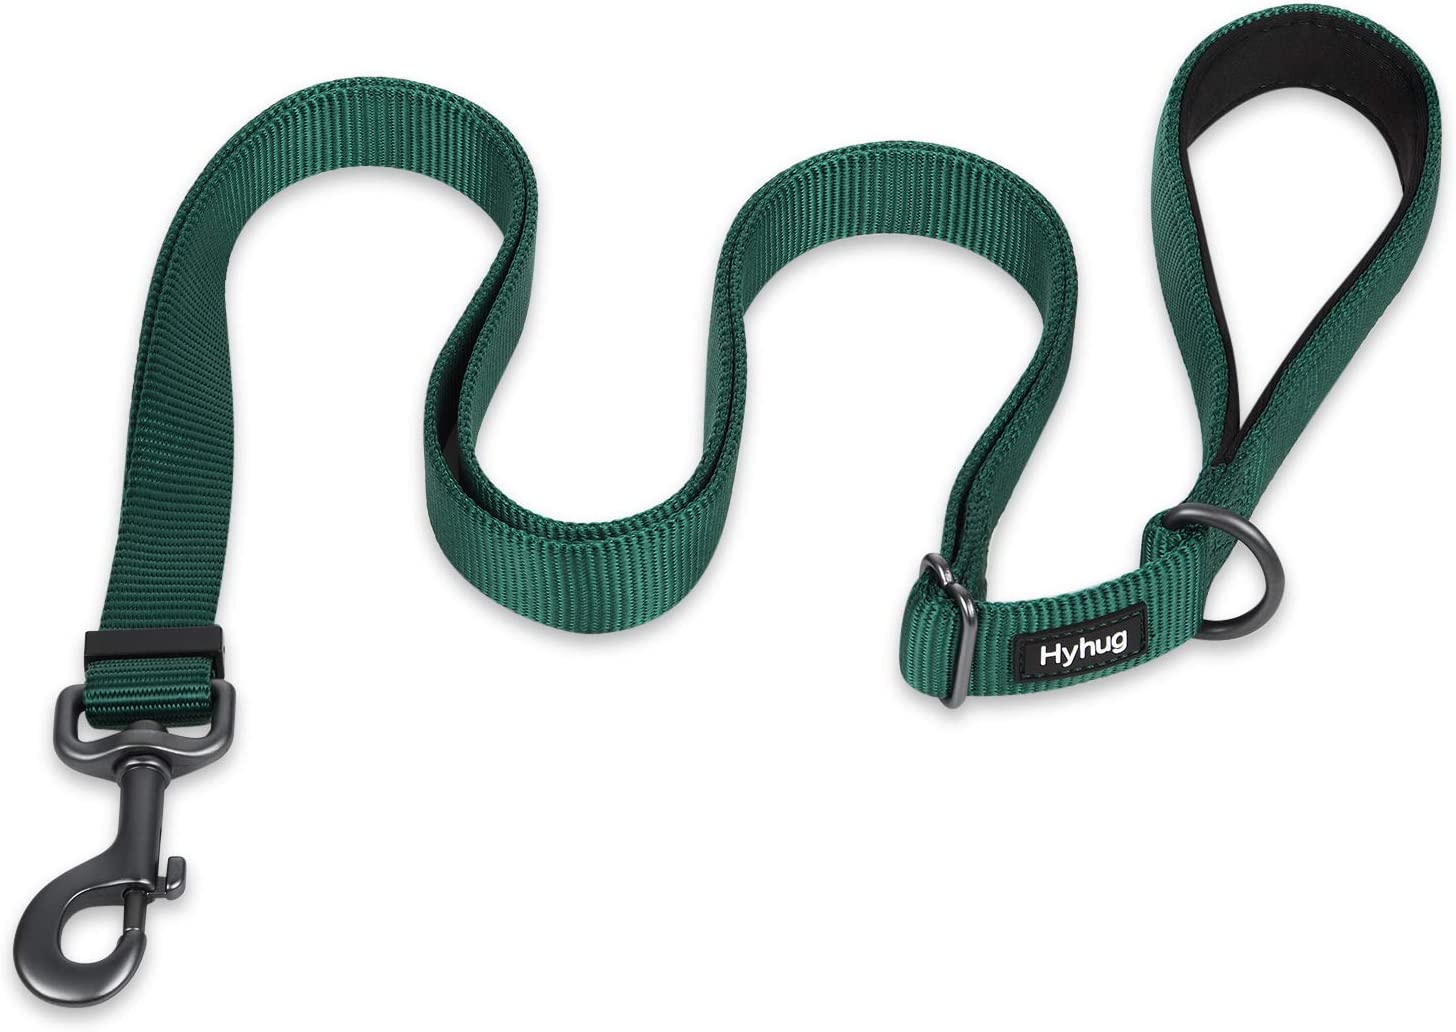 Hyhug Pets Upgraded Adjustable Between 4 Feet and 6 Feet Lead with Sturdy Nylon and Super Soft Neoprene lined Handle for Medium Large Giant Dogs. Large, Obsidian Black